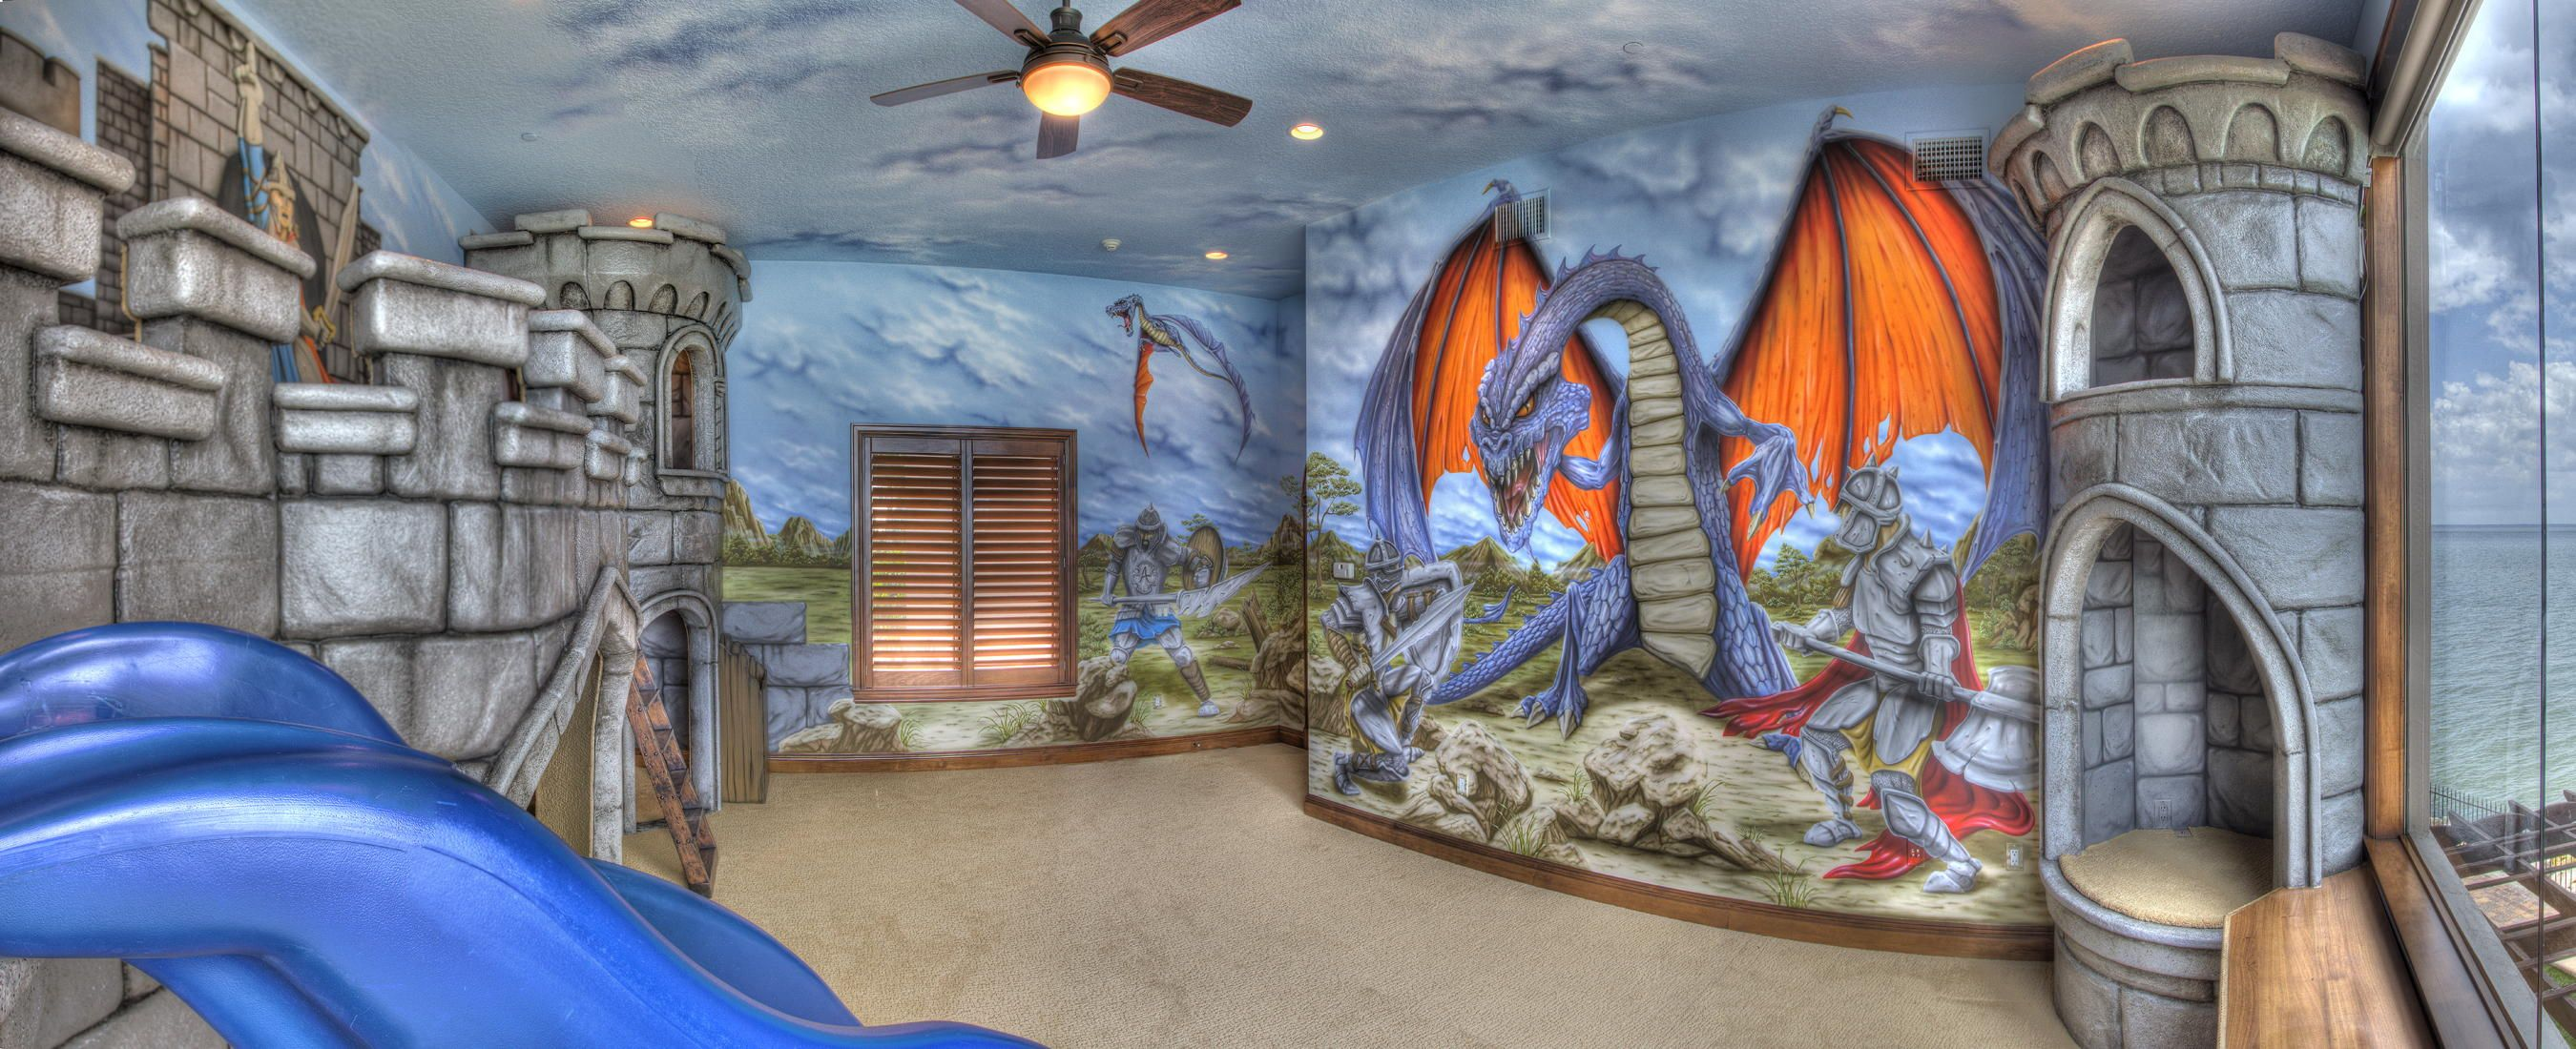 Dragon Themed Bedroom Google Search Playroom Design